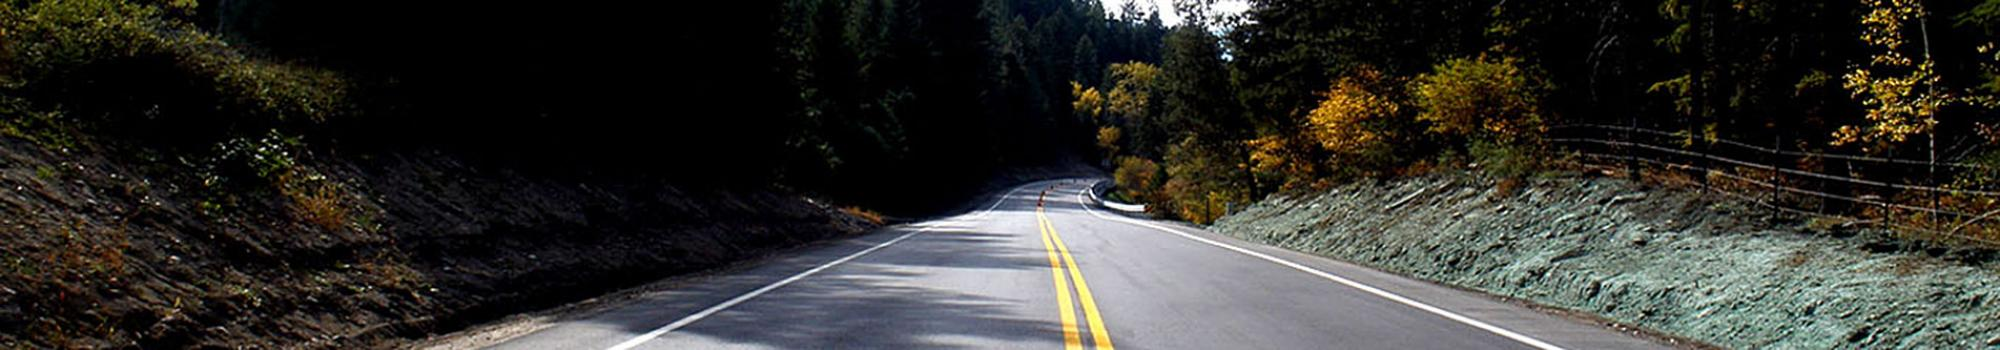 Stevens County highway project